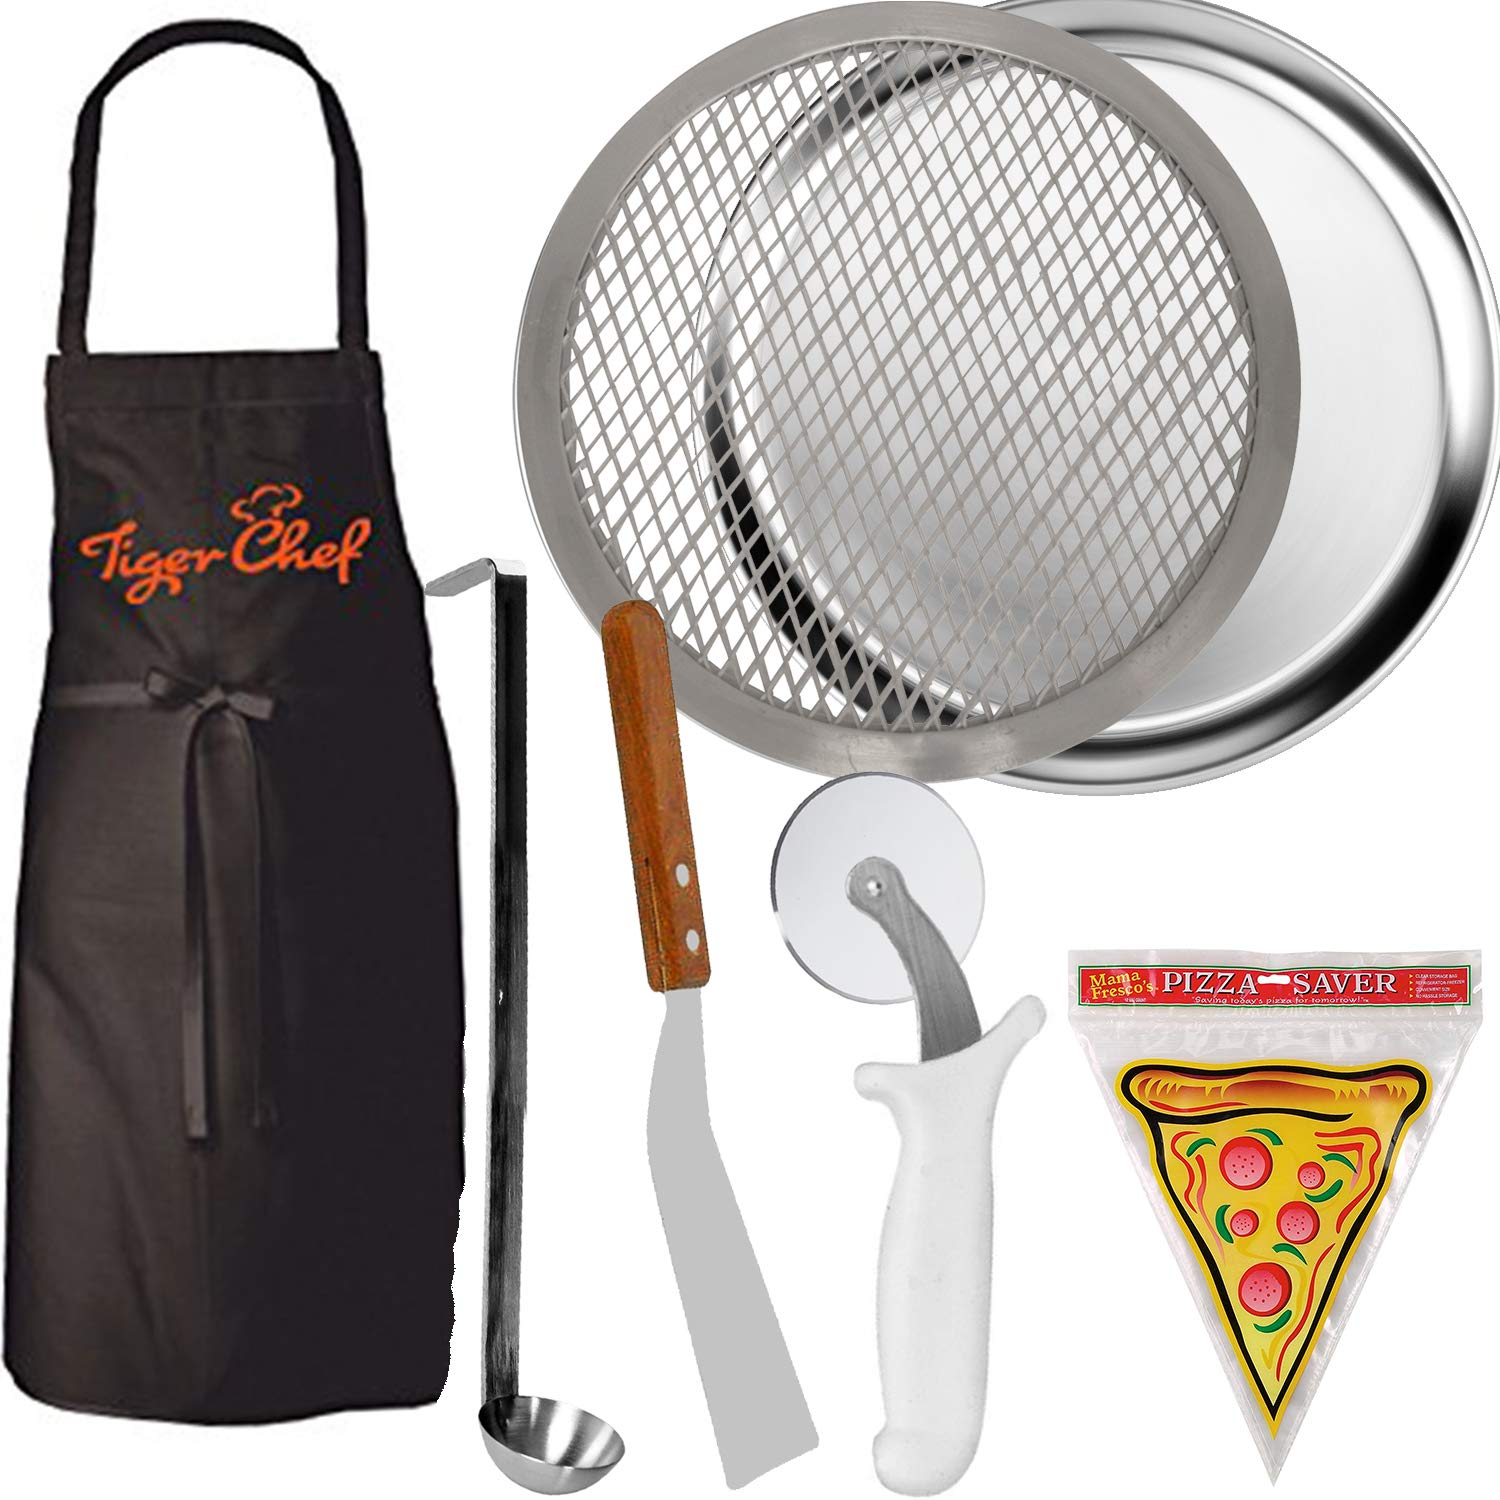 TigerChef 0026-TC-PIZZAKIT@8INTC-20416 Homemade Pizza Making Kit, 6-Piece Pizza Pro Set, Includes Kitchen Tools Single Portion Pizza Pan, Pizza Screen, Pizza Wheel, Pizza Server, Sauce Ladle, Apron and How to Make Your Own Pizza Guide